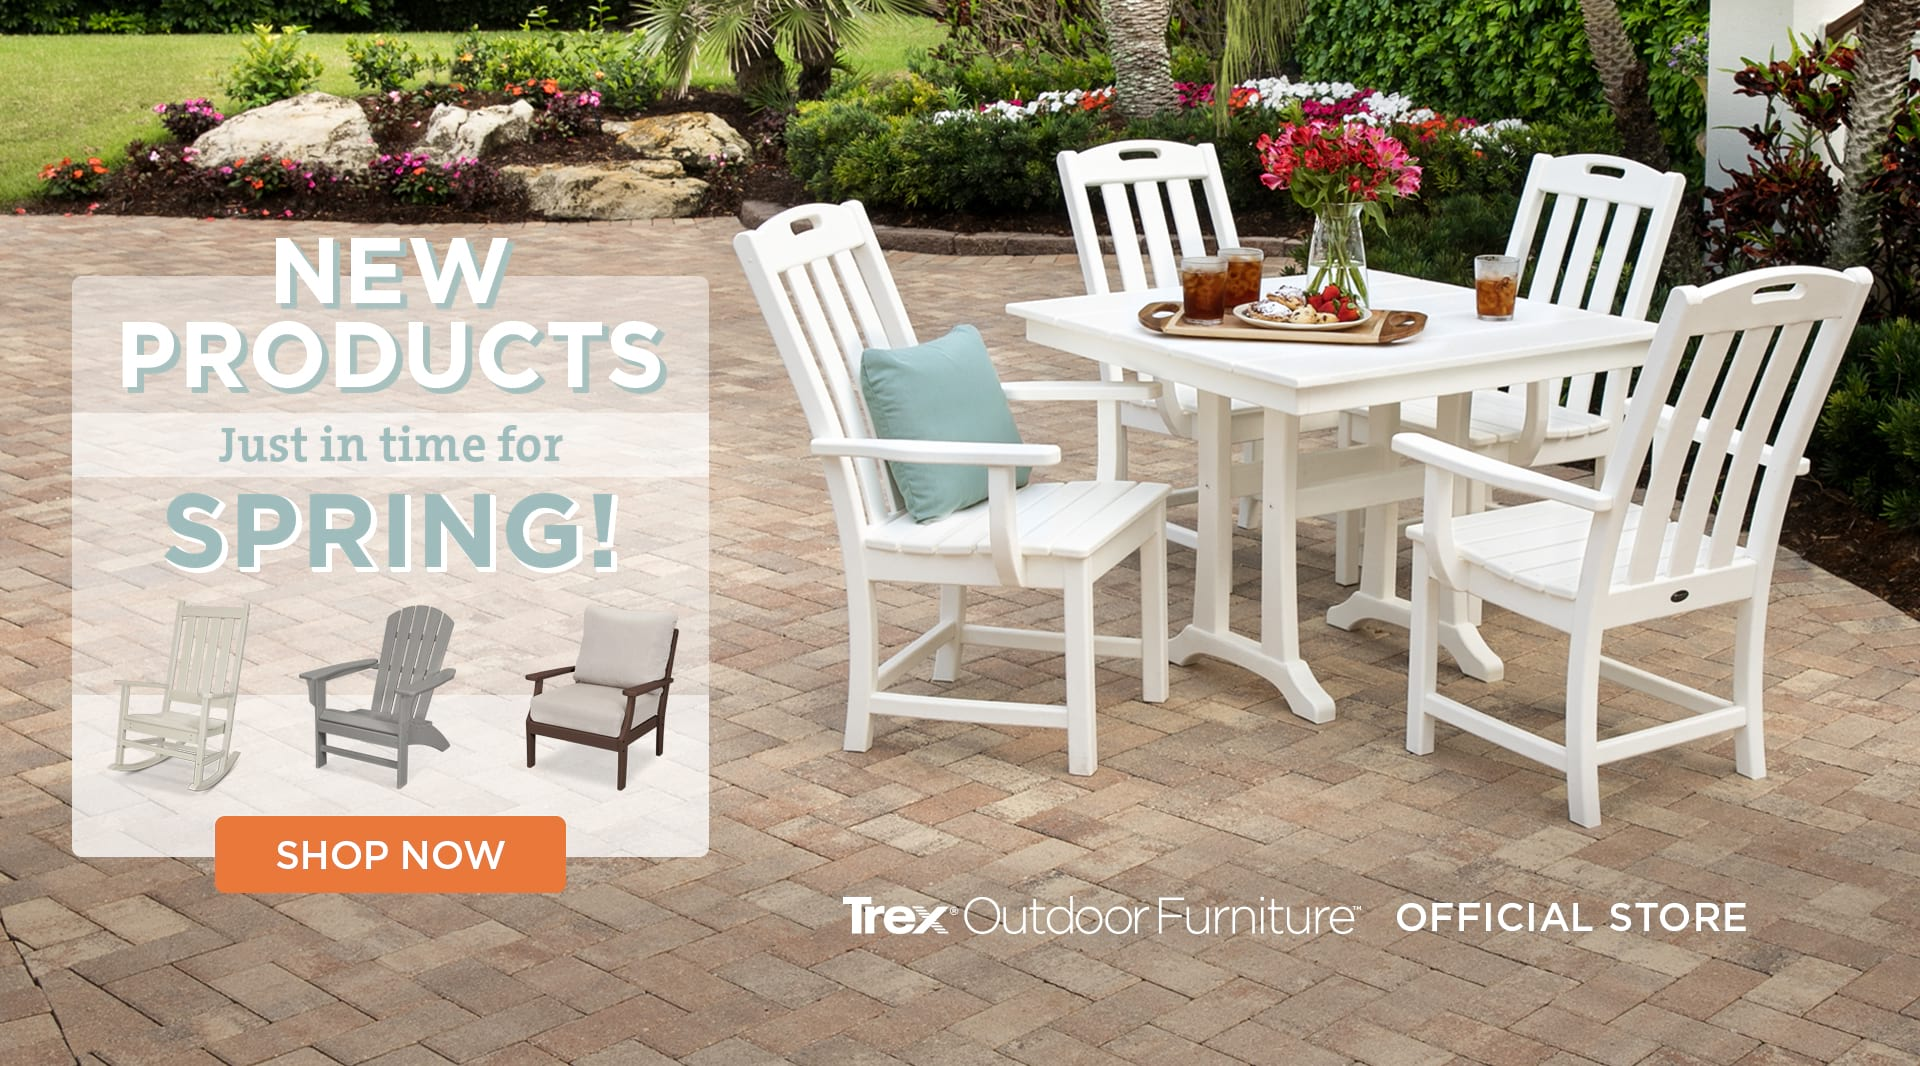 New Products Just in time for Spring!